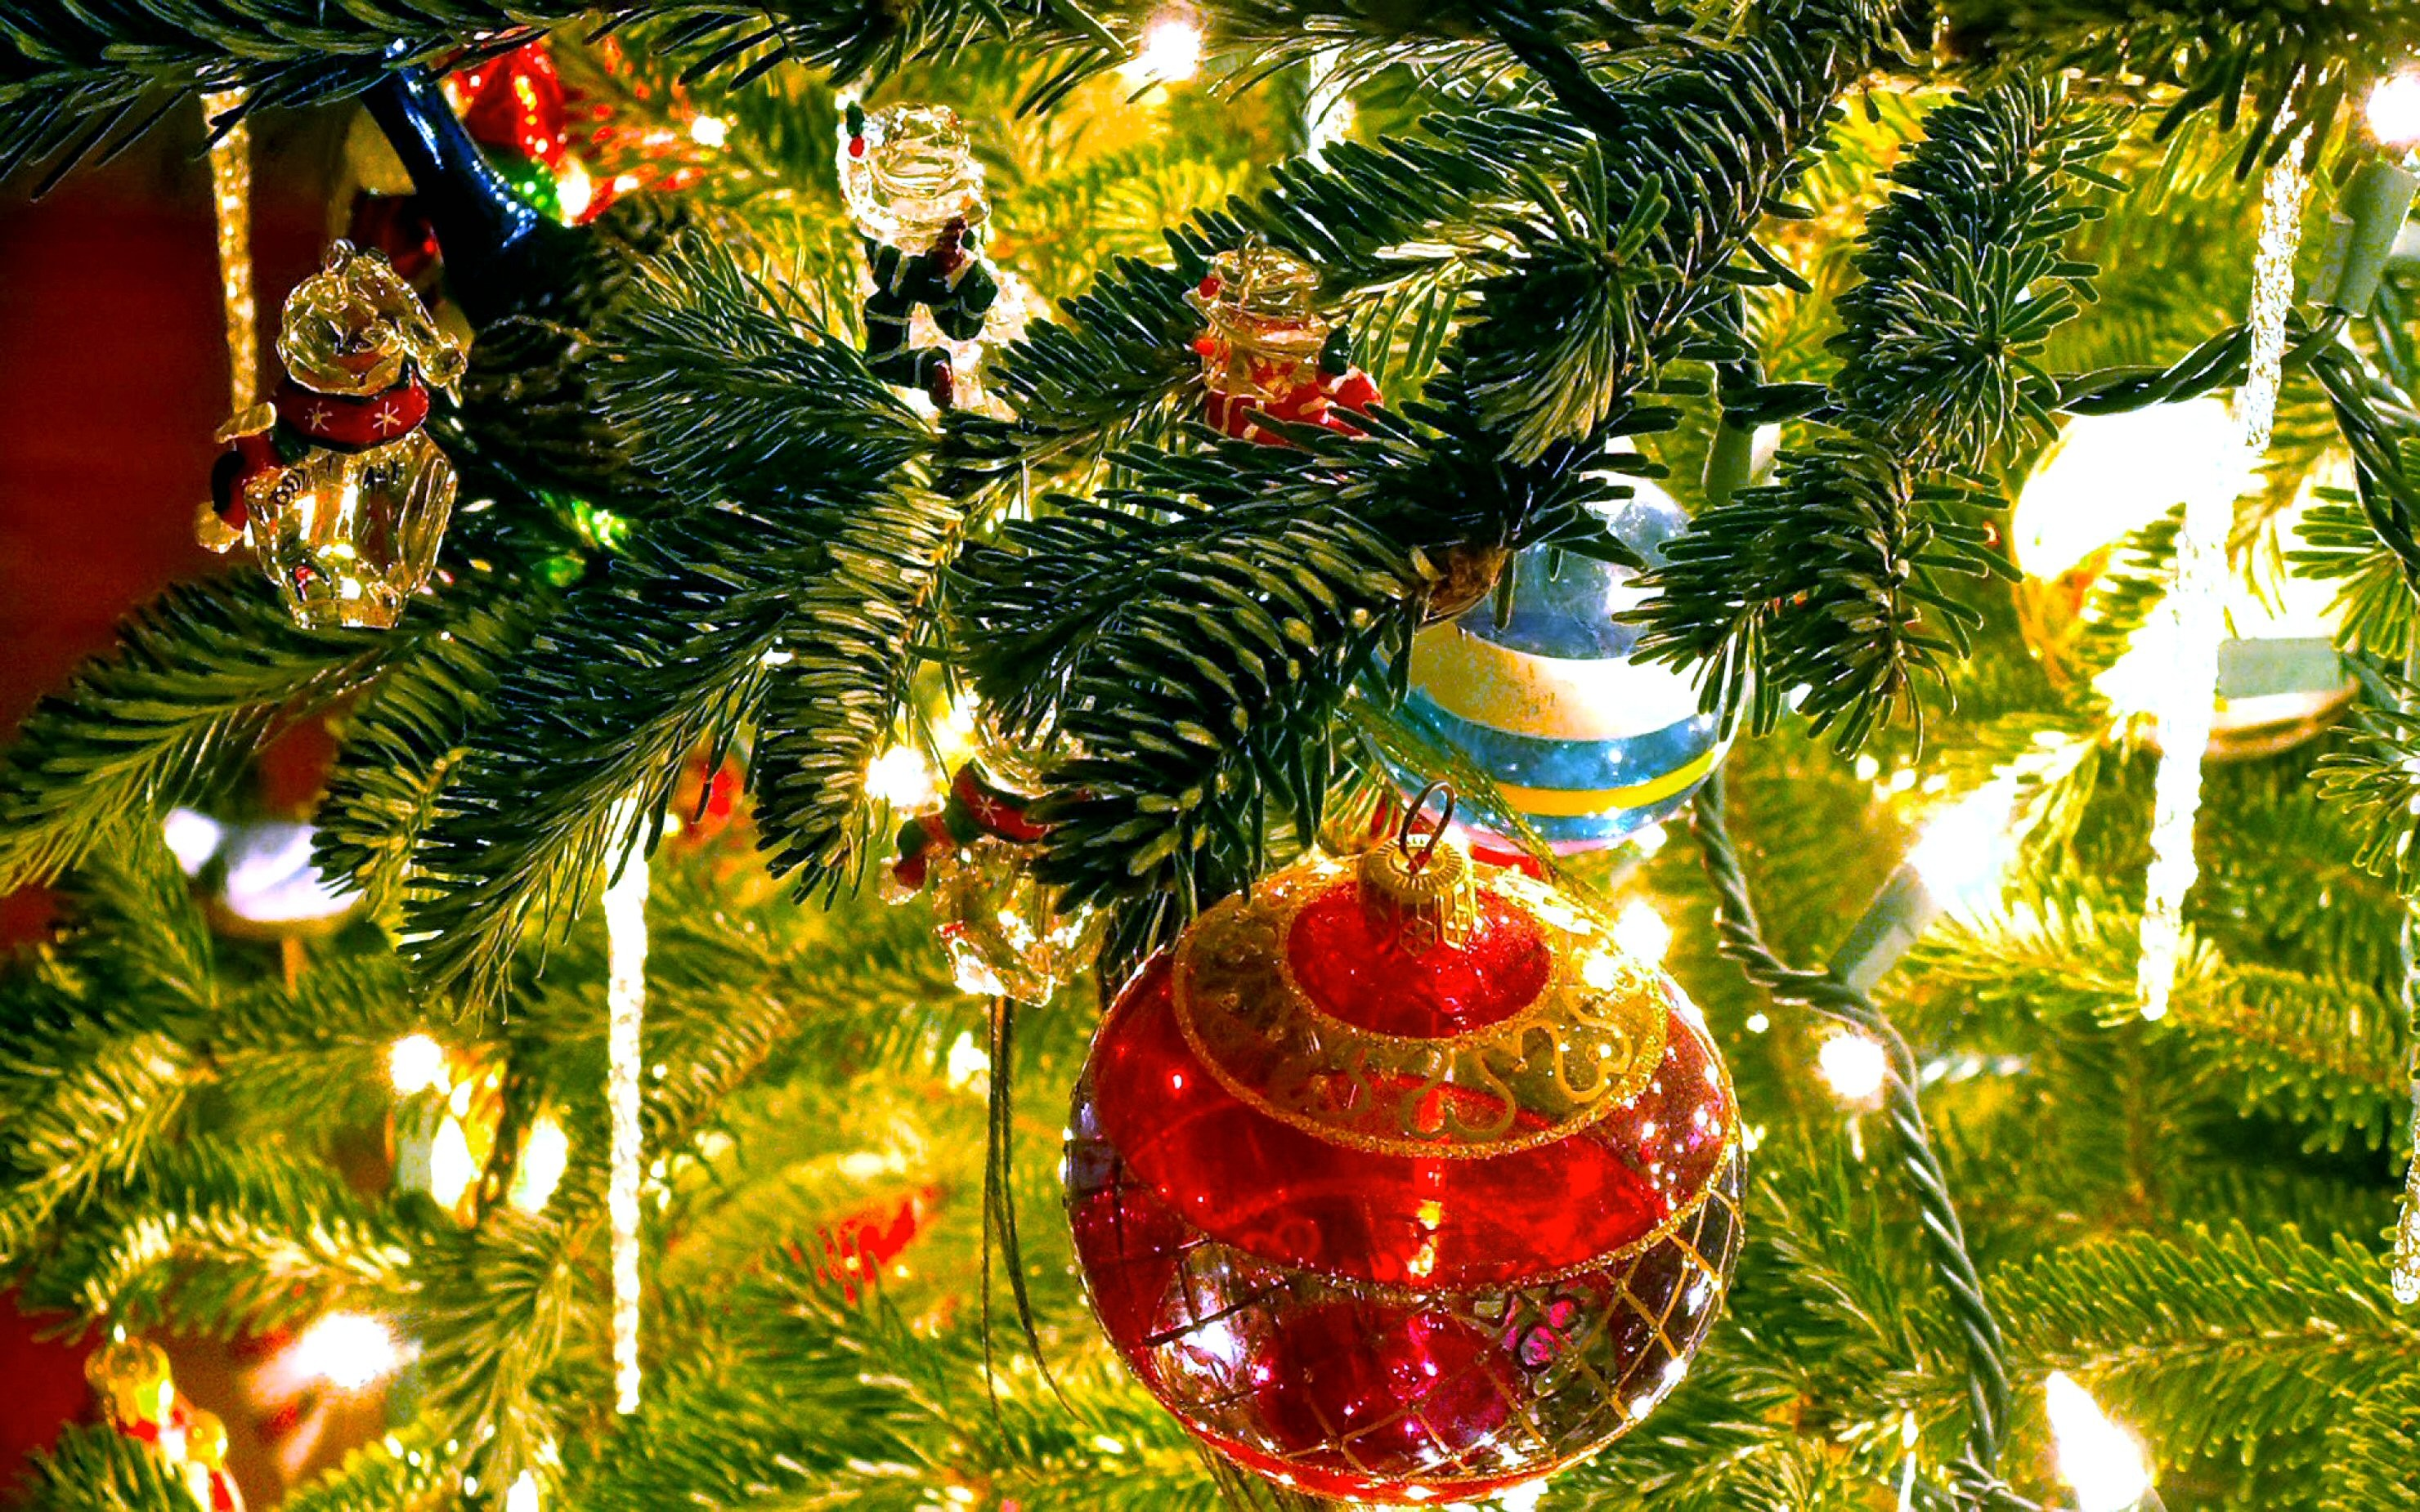 Res: 2960x1850, HD Wallpaper | Background Image ID:336065.  Holiday Christmas